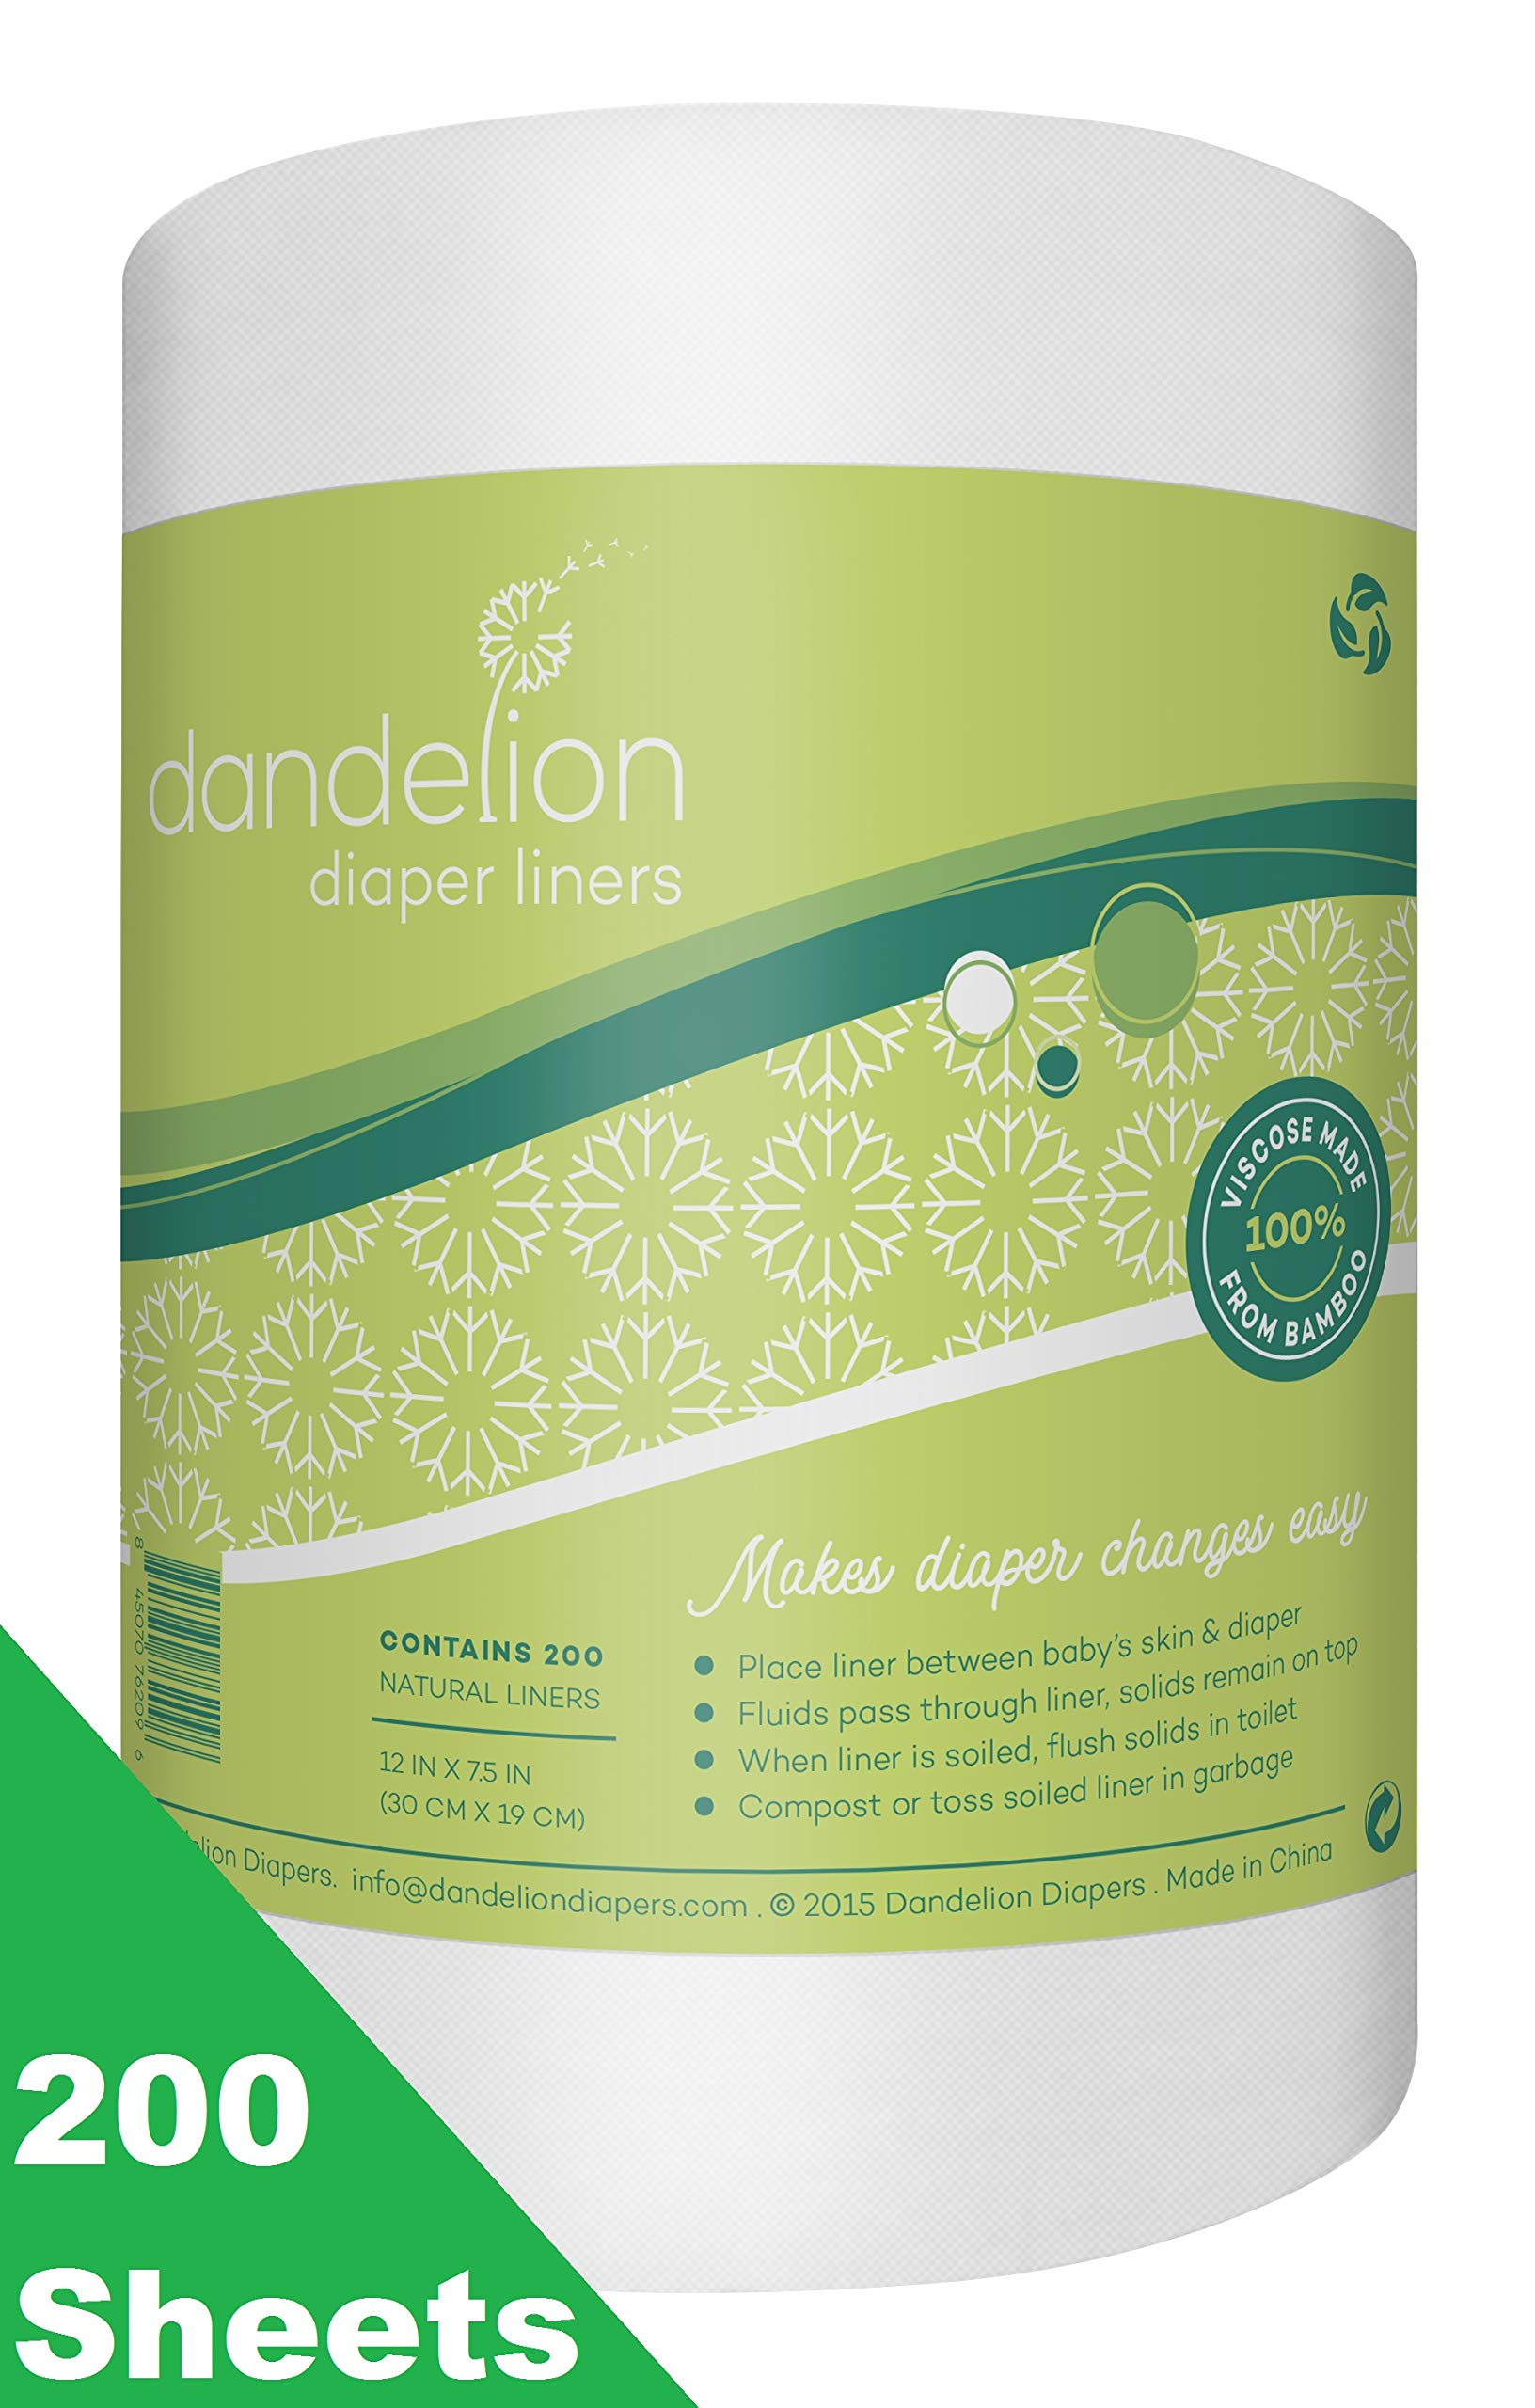 Dandelion Diapers Biodegradable and Flushable Natural Diaper Liners, 100% Viscose Made From Bamboo, 200 Sheets by Dandelion Diapers